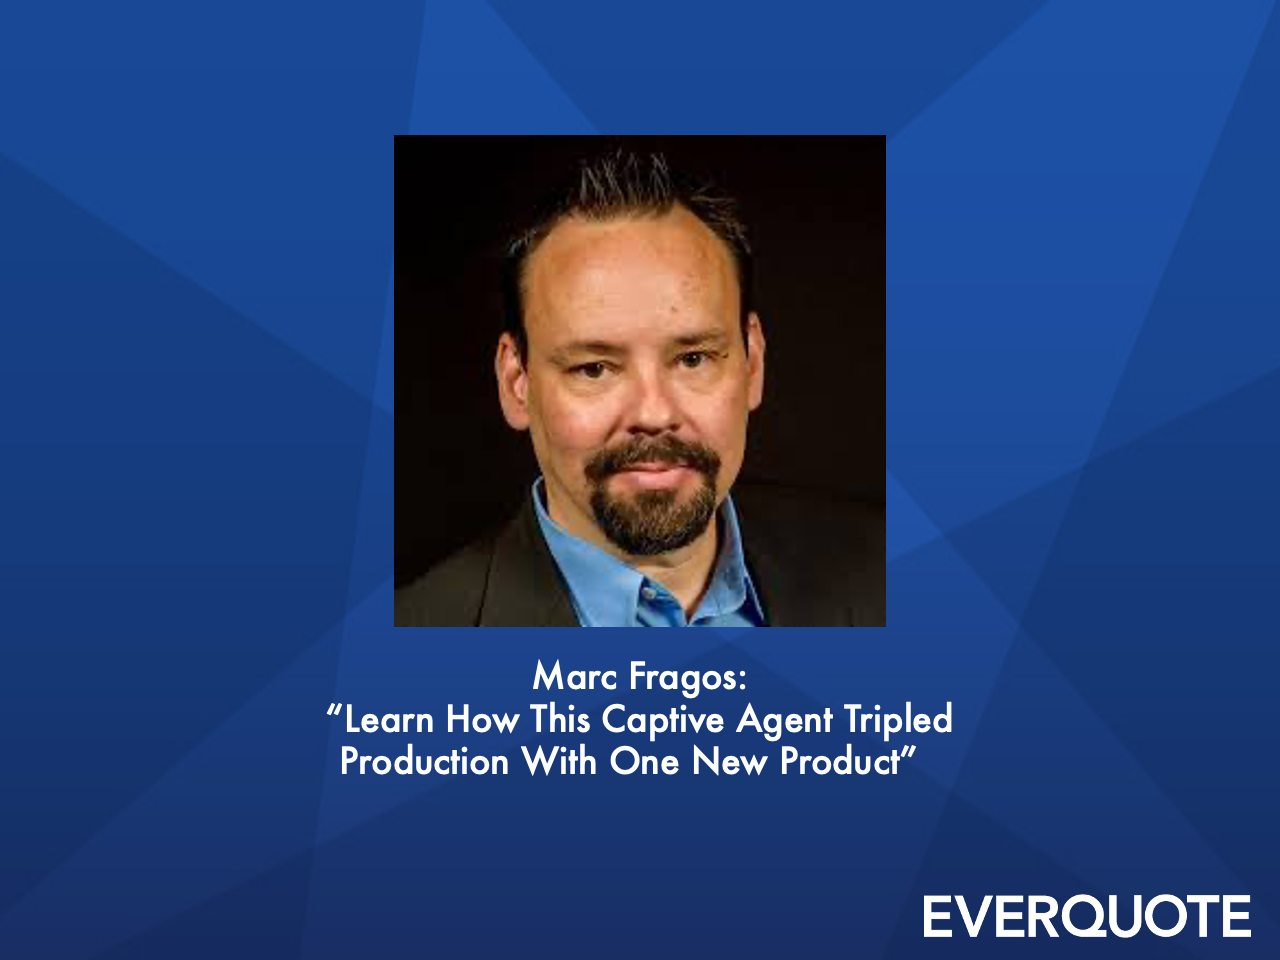 Learn How This Captive Agent Tripled Production With One New Product Interview with Agency Owner Marc Fragos